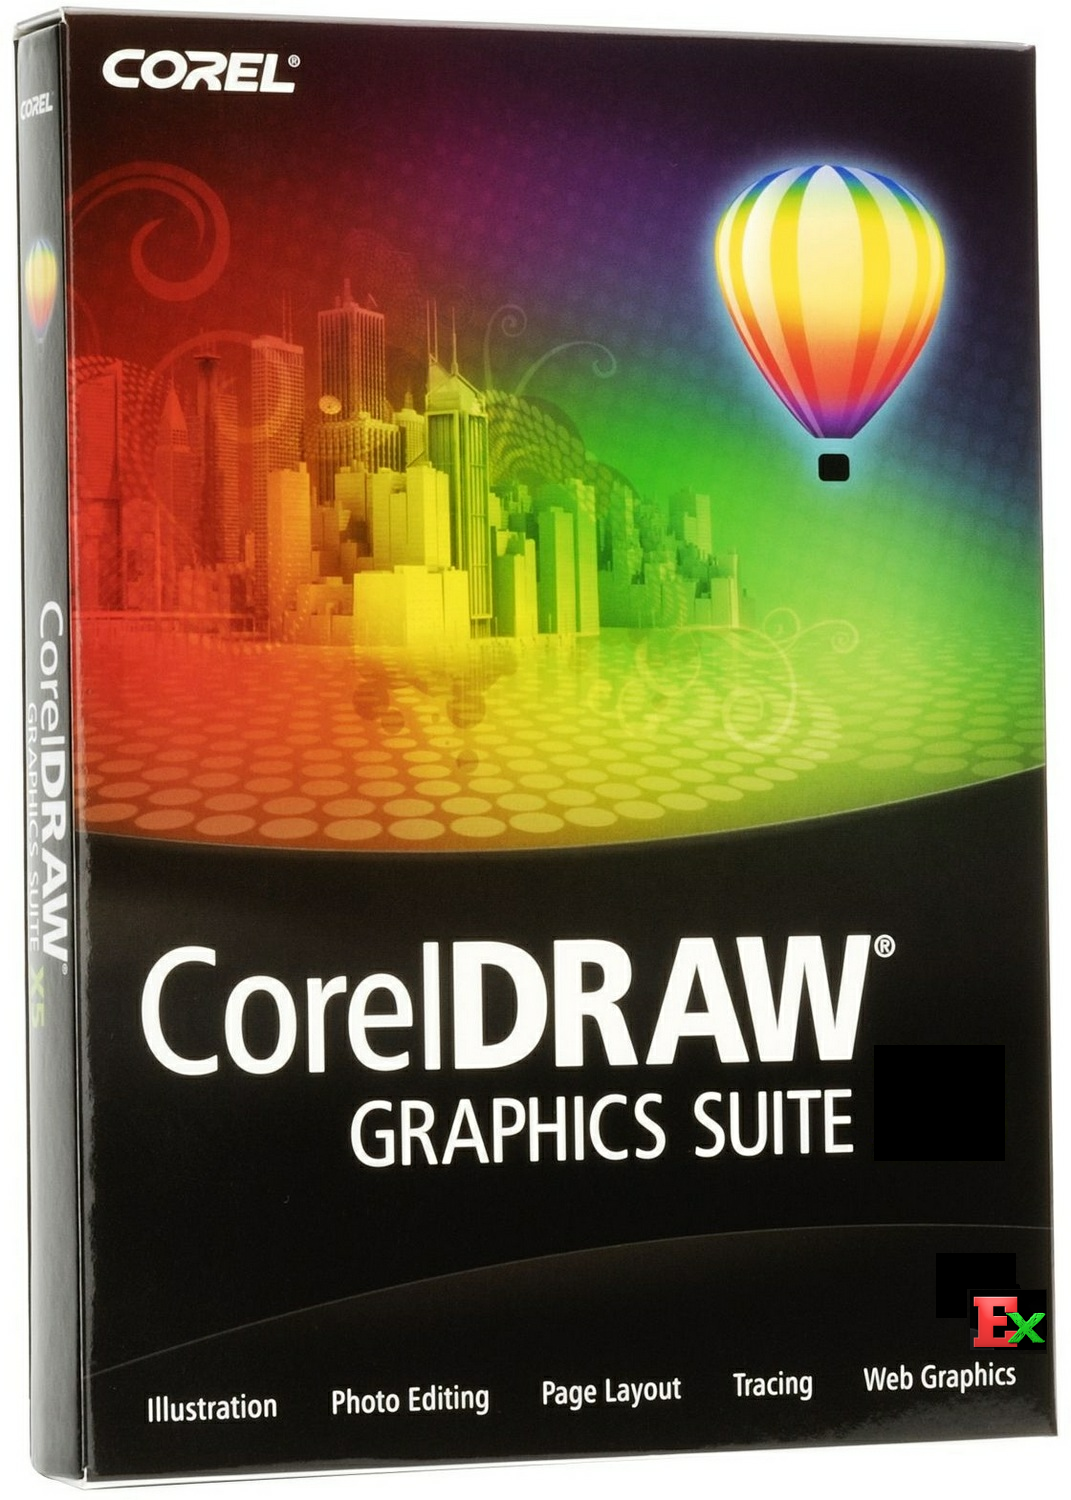 Corel Graphic Suite